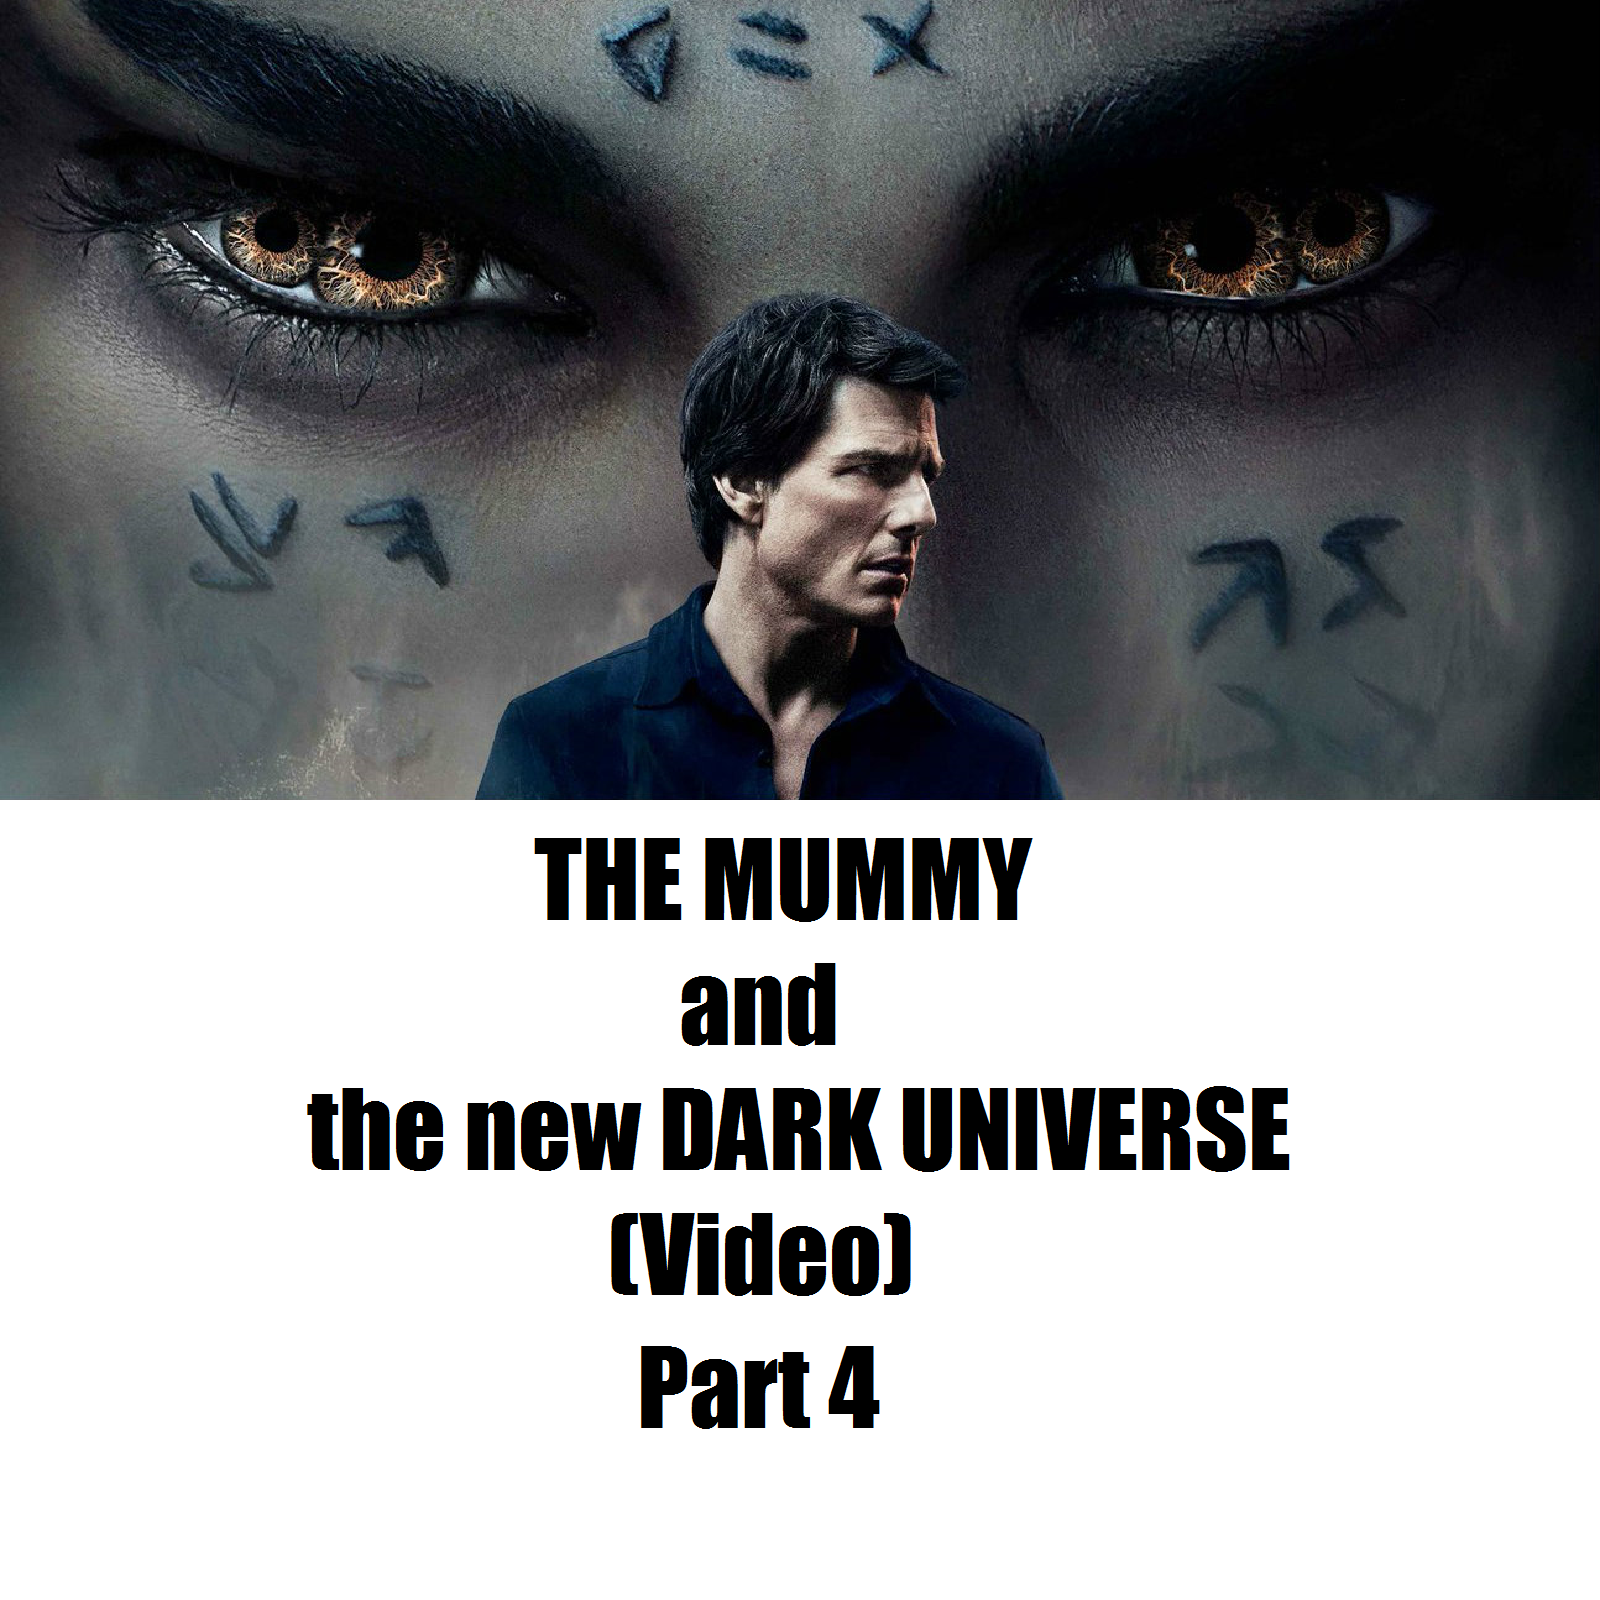 Artwork for VIDEO - Is THE MUMMY what you thought it would be? (Part 4 of 4)